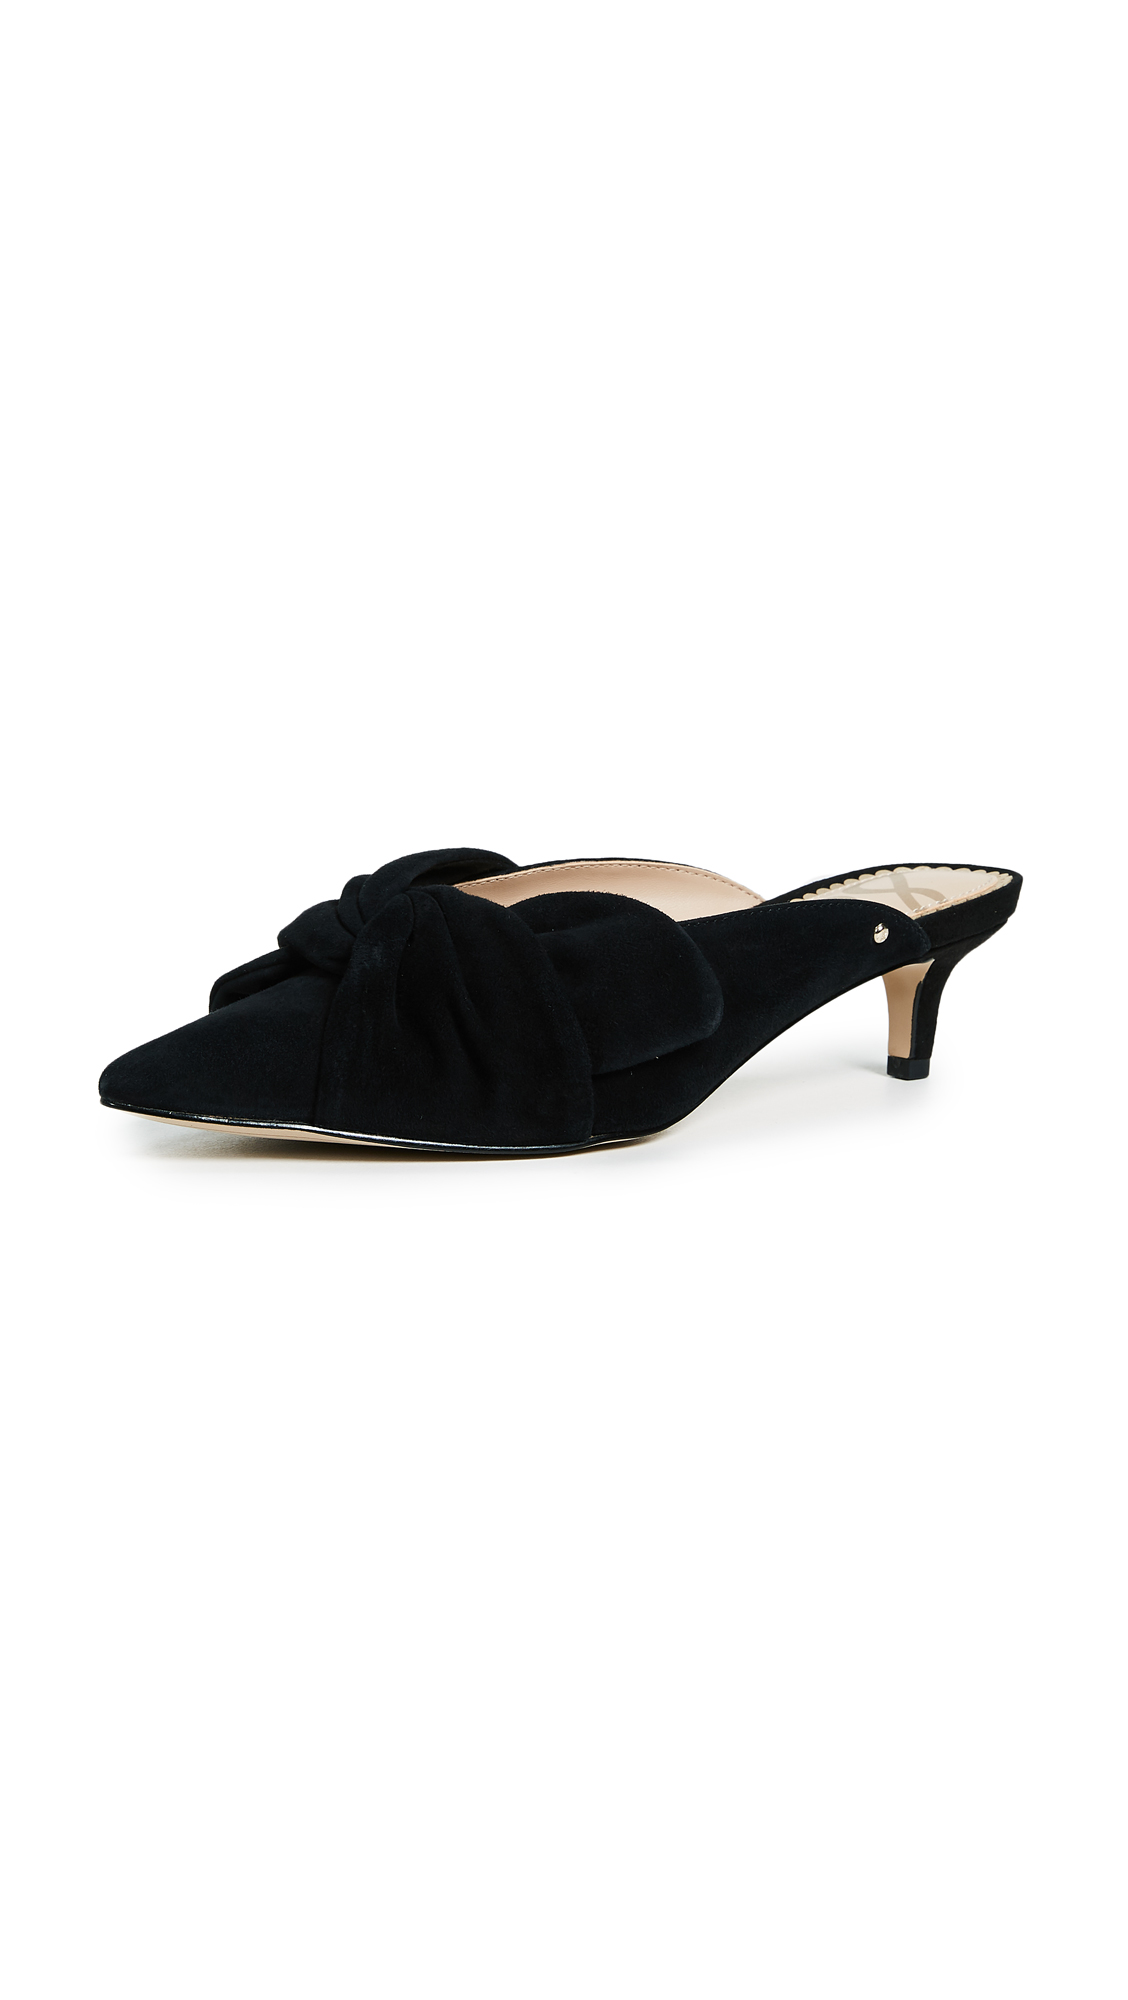 Sam Edelman Laney Bow Mules - Black